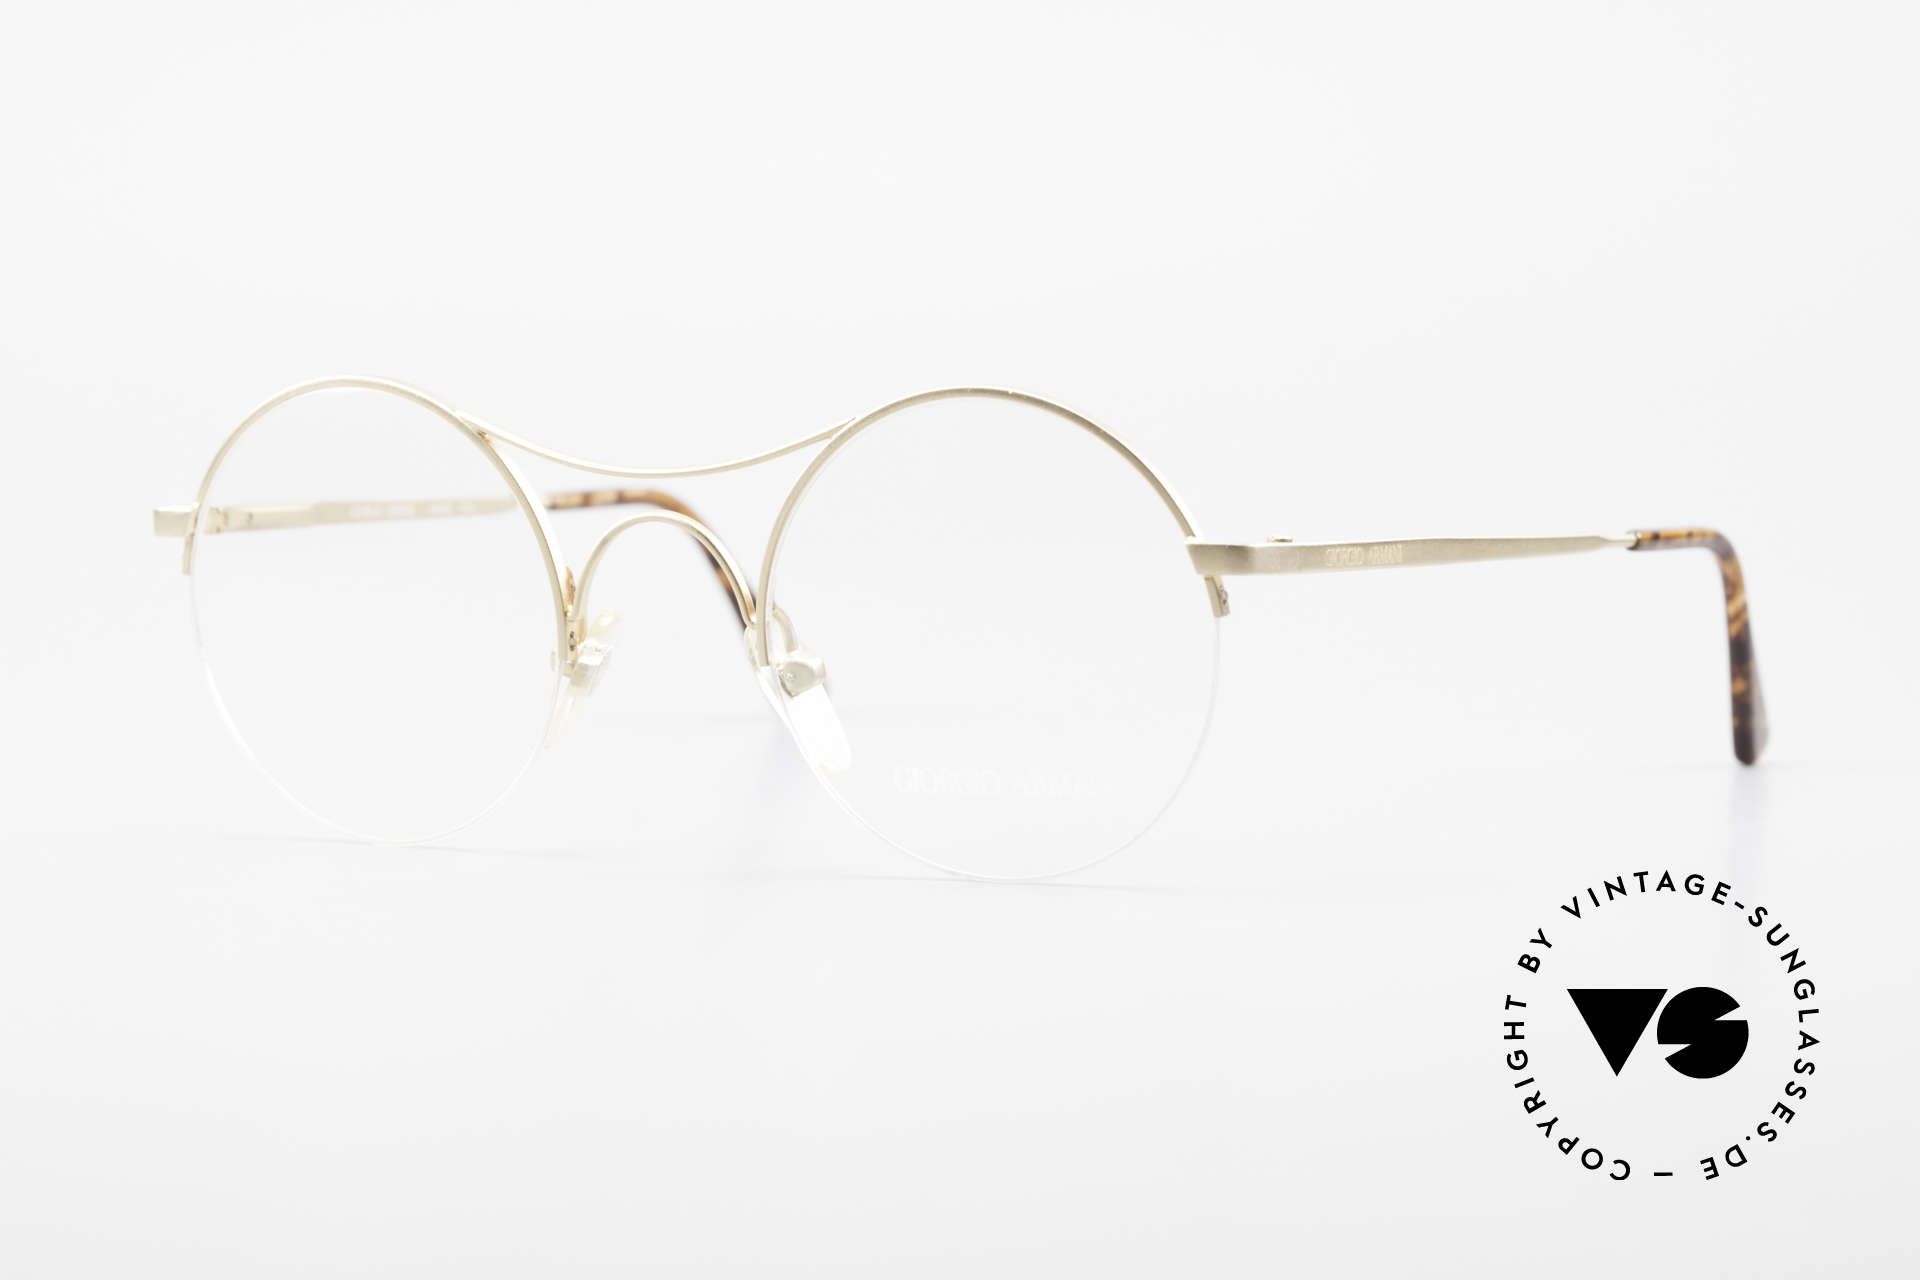 Giorgio Armani 121 Schubert Glasses Round Style, Giorgio Armani frame, mod. 121, col. 706, size 47-24, Made for Men